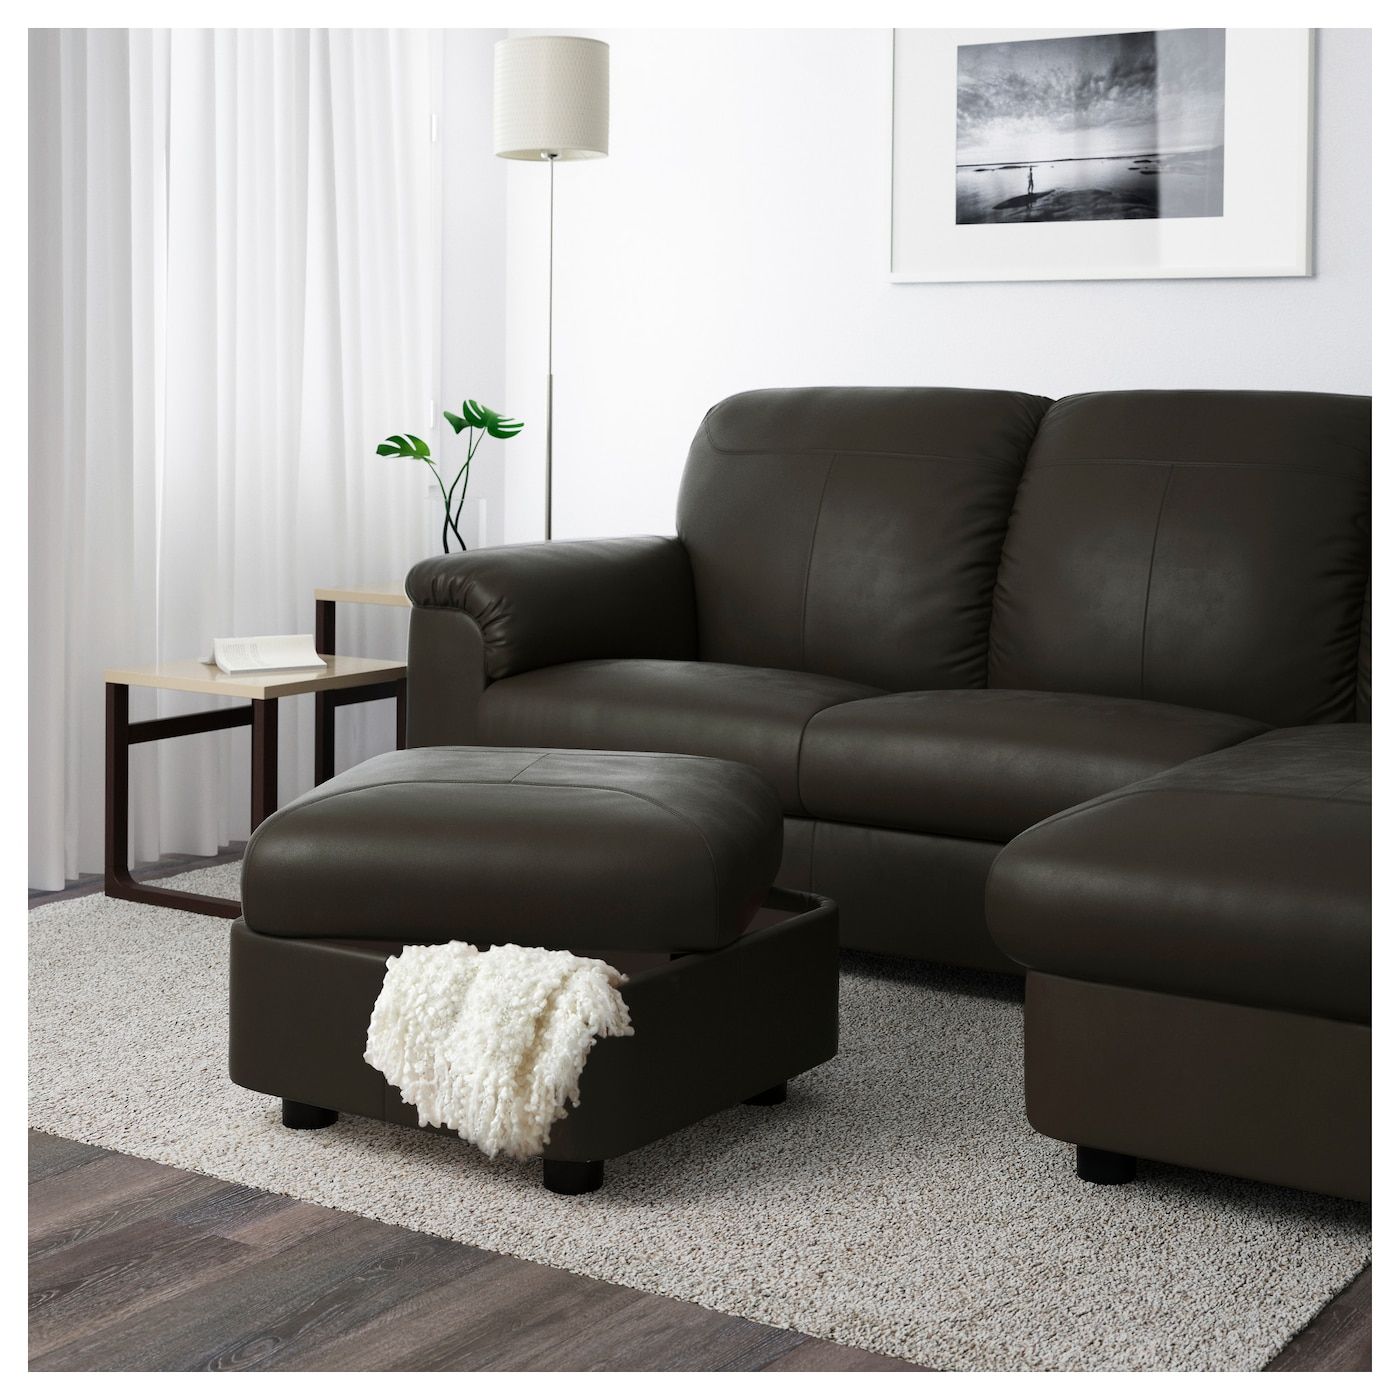 IKEA TIMSFORS footstool Works as an extra seat or footstool.